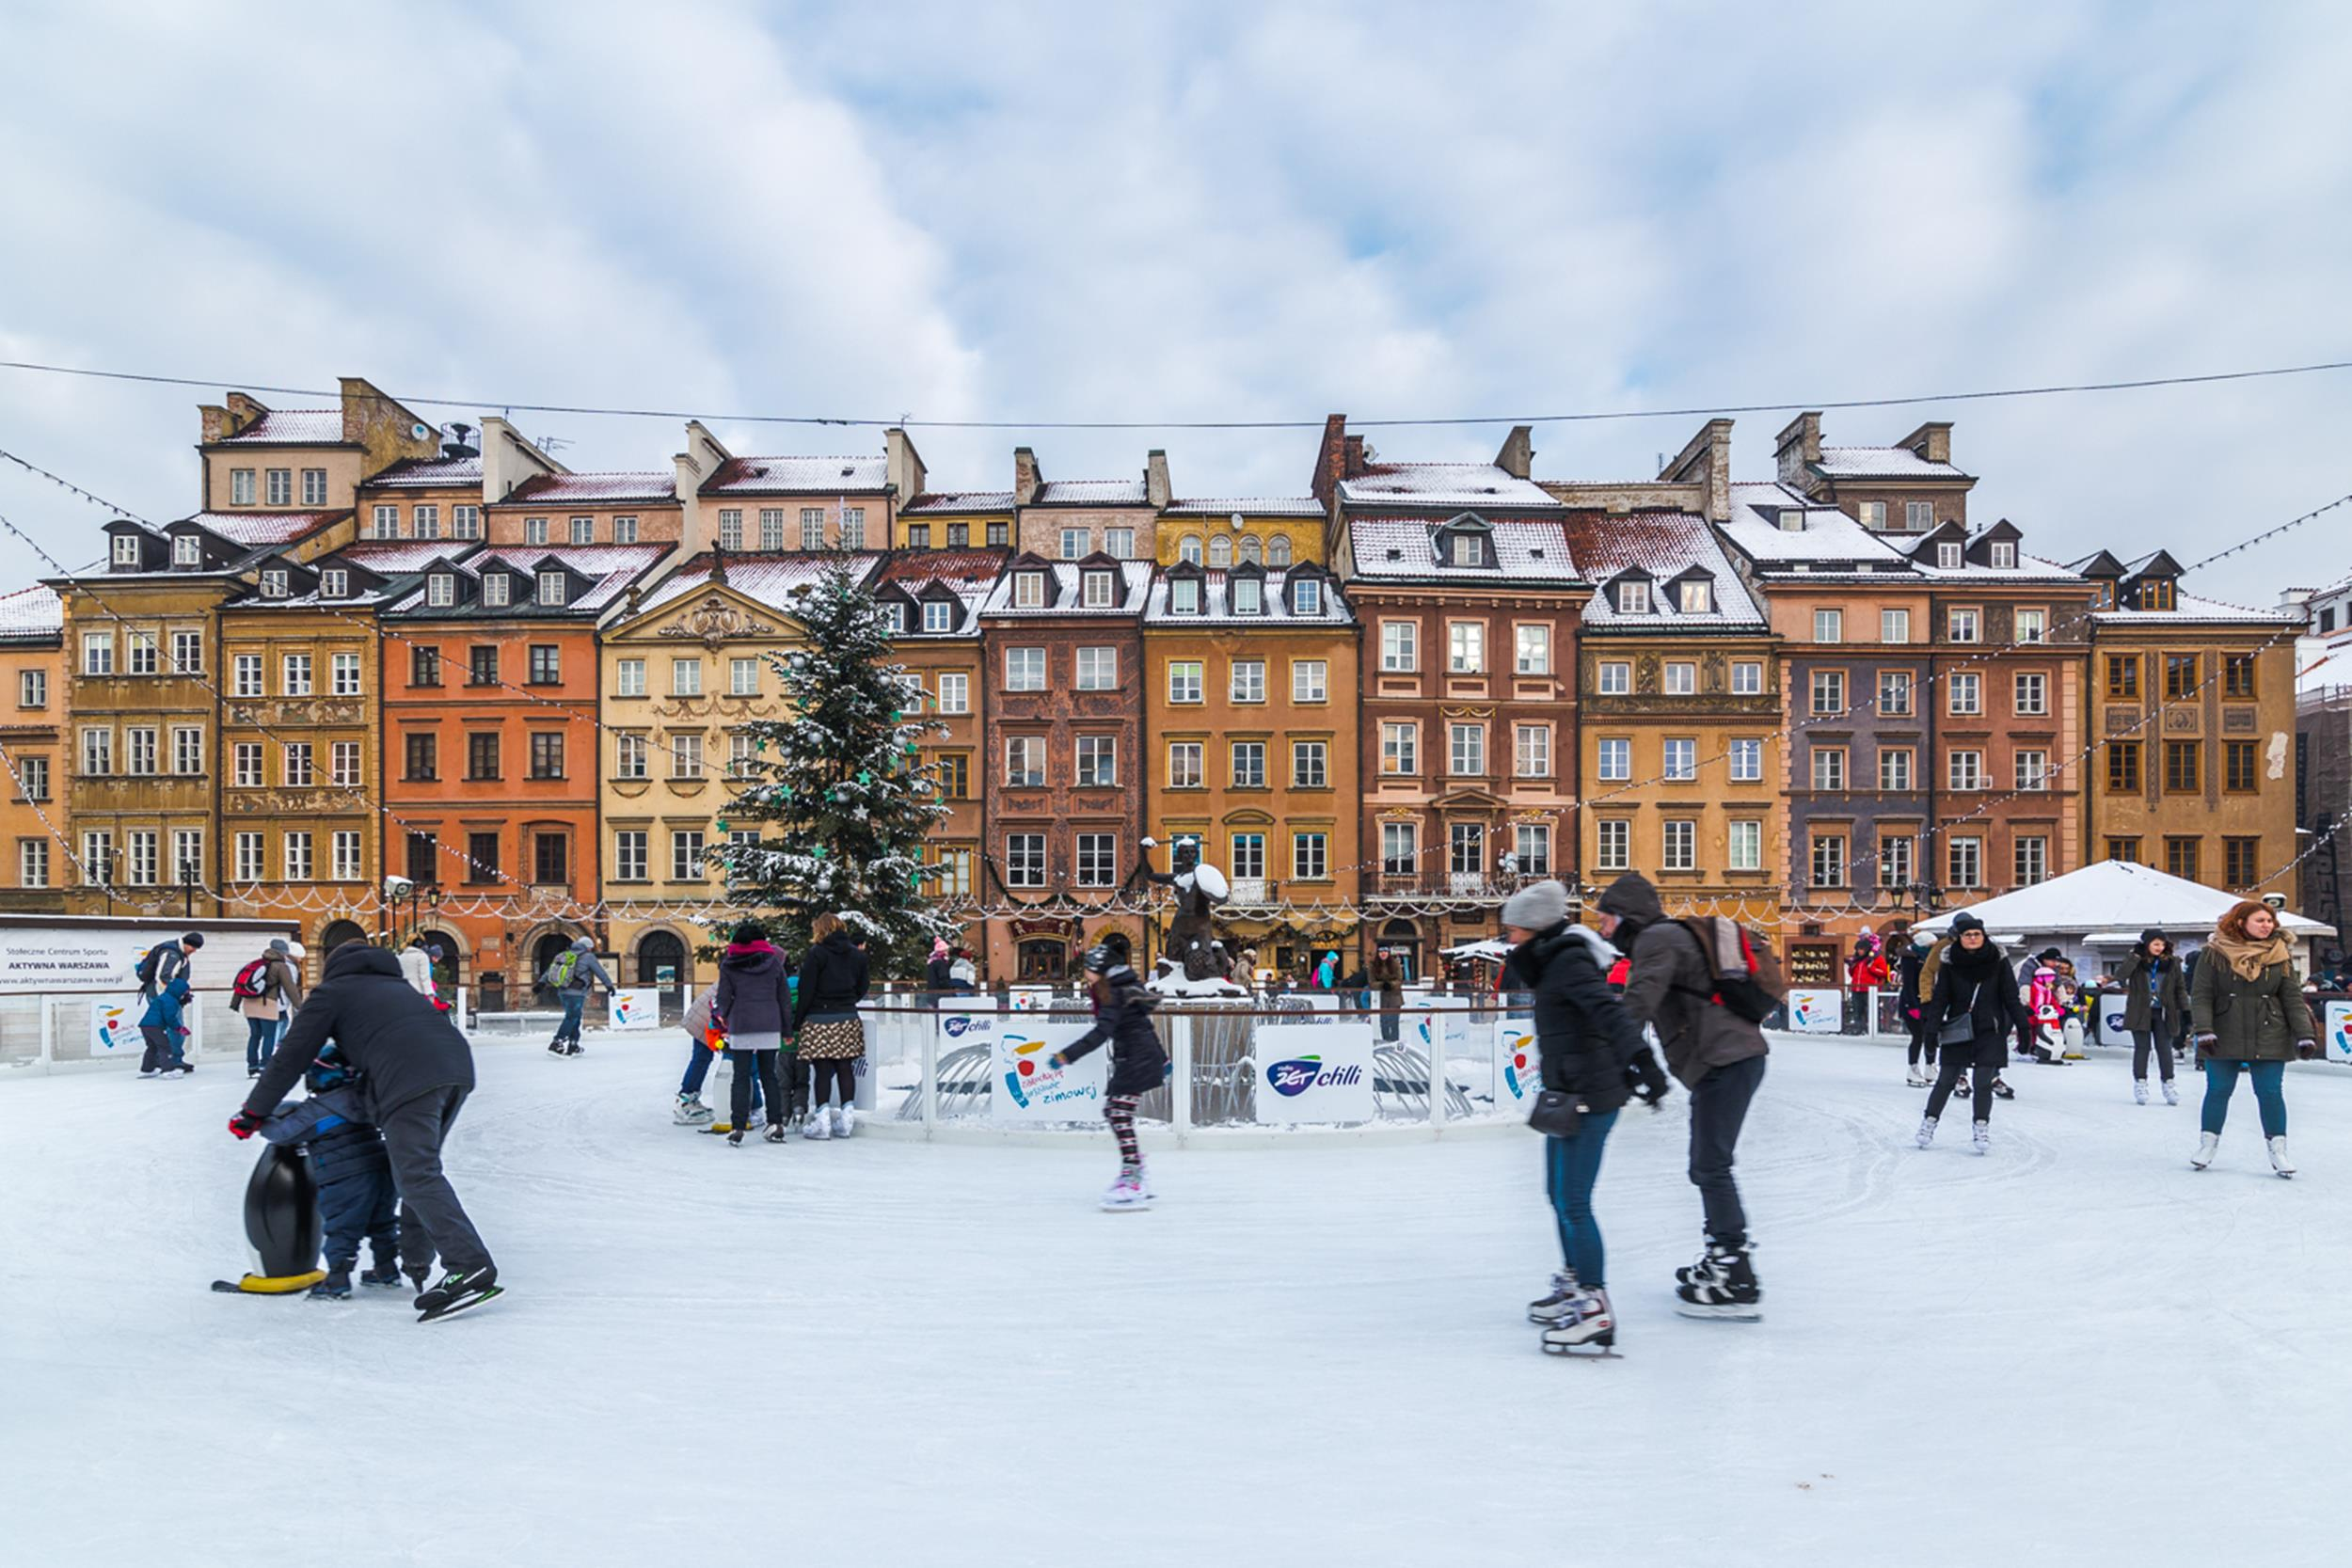 Best Place To Spend Christmas Enjoy Winter Outdoor Sporting Activities In The City